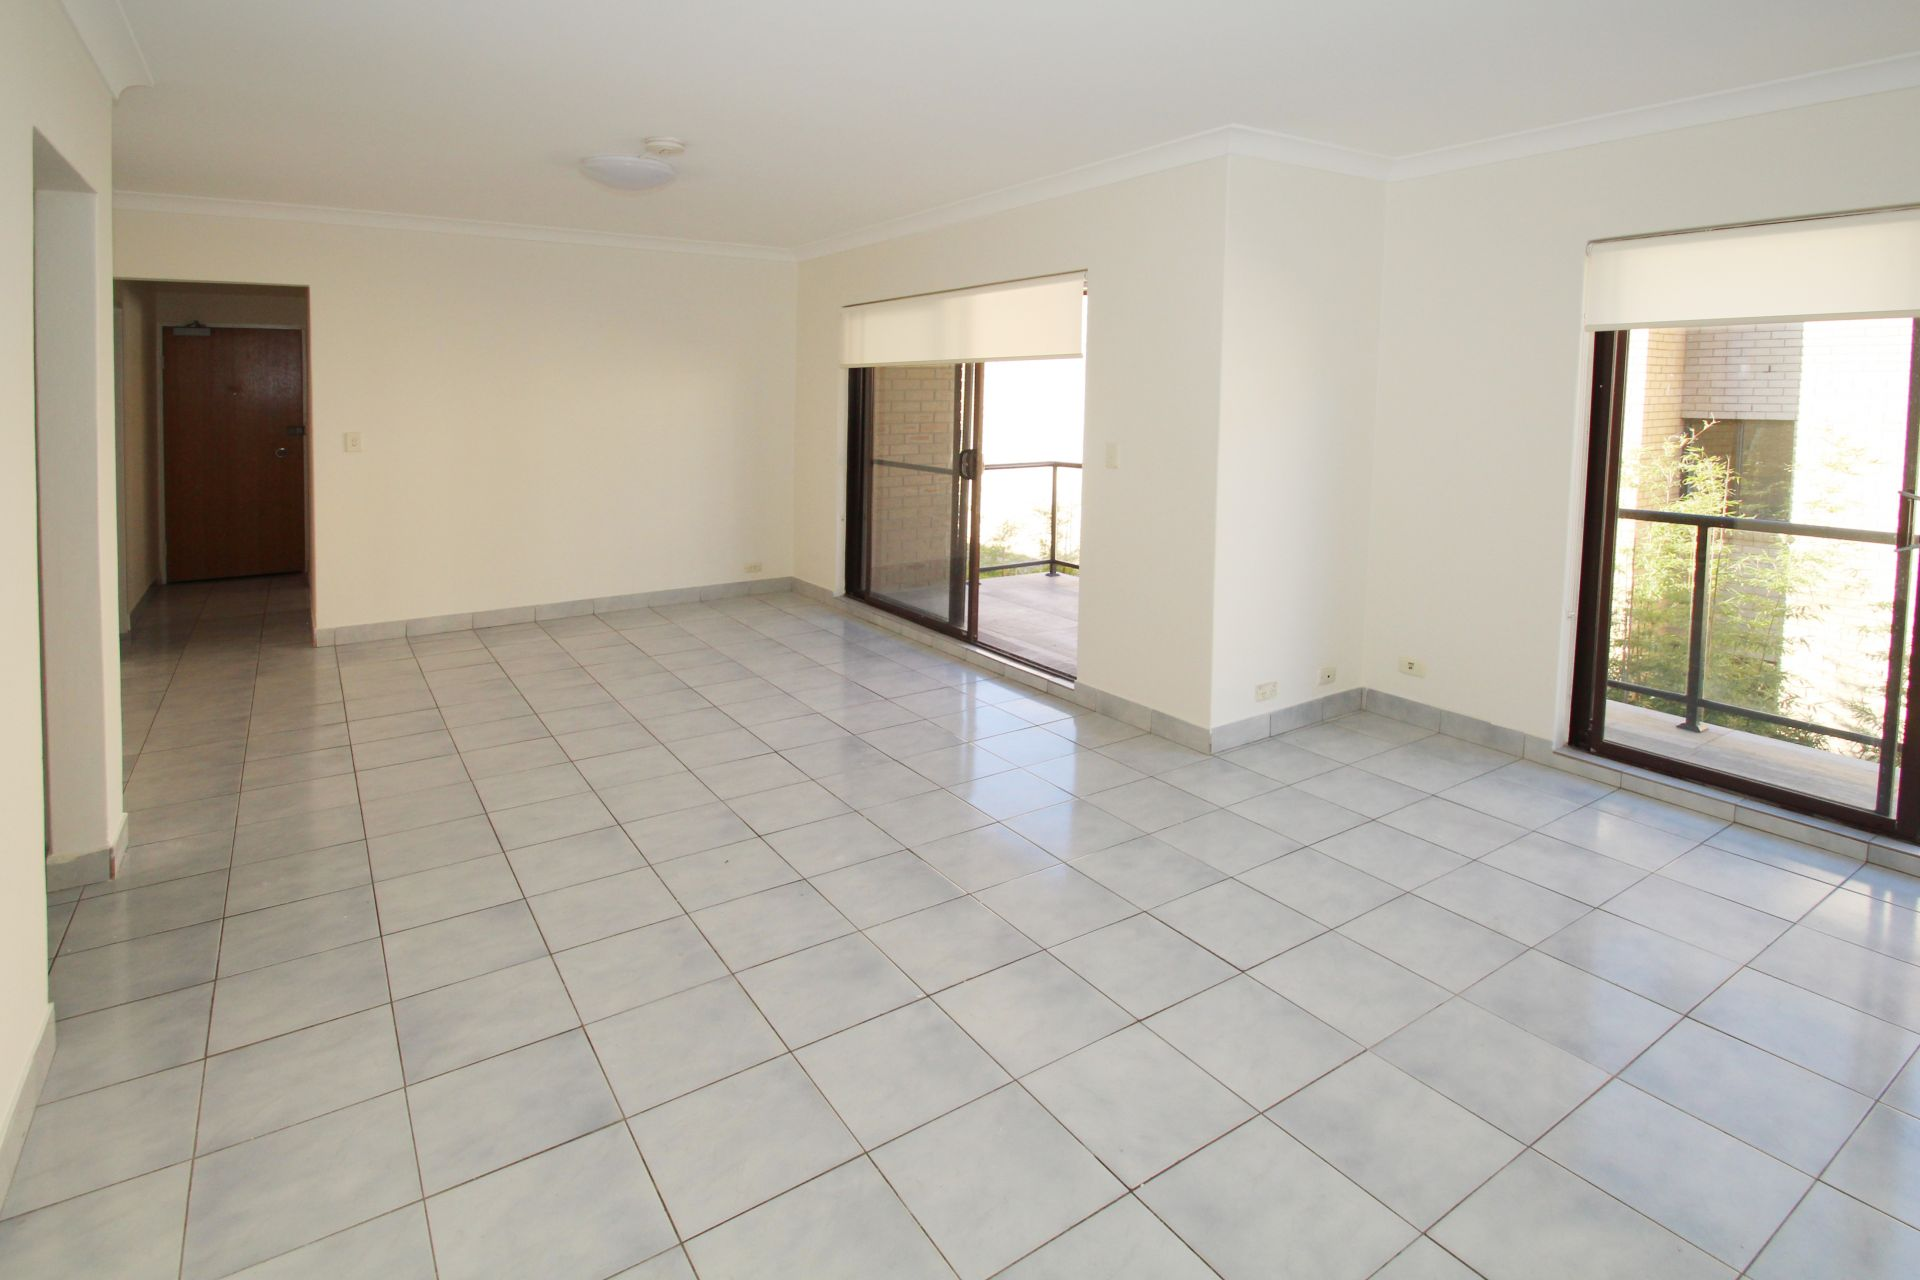 SPACIOUS 2 BEDROOM APARTMENT JUST A STROLL FROM THE BEACH